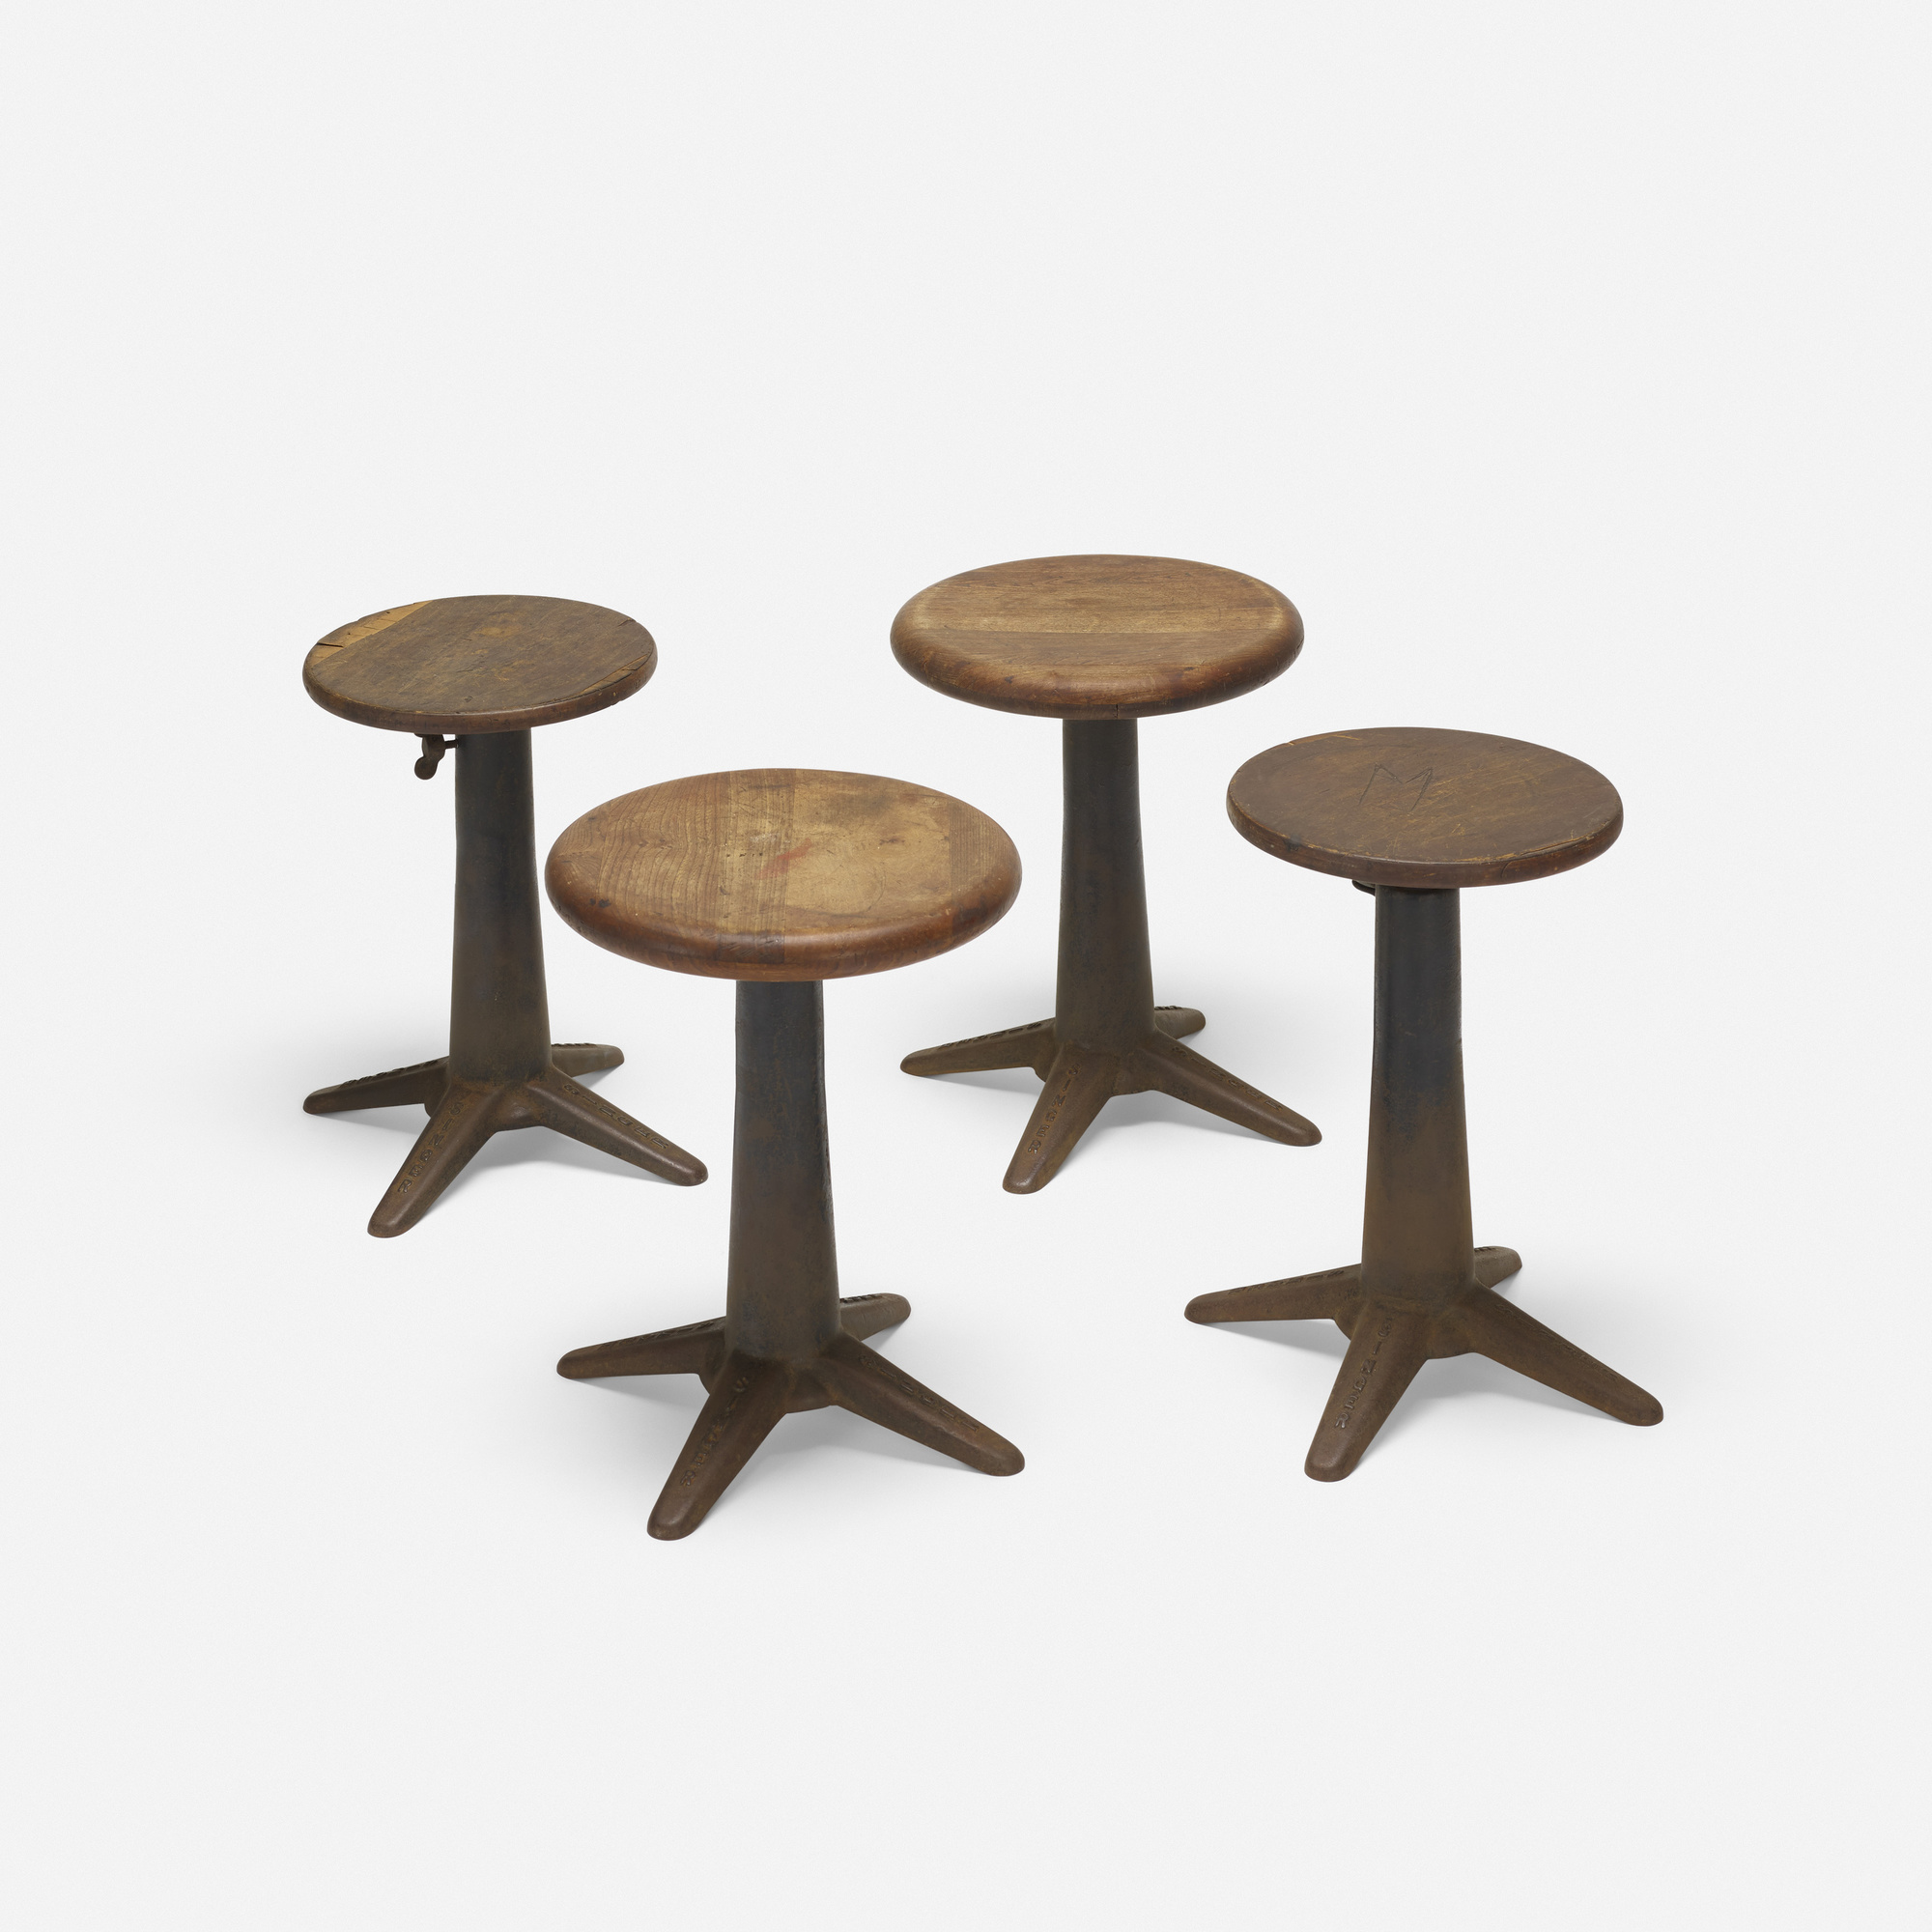 130: Singer / sewing stools, set of four (1 of 2)